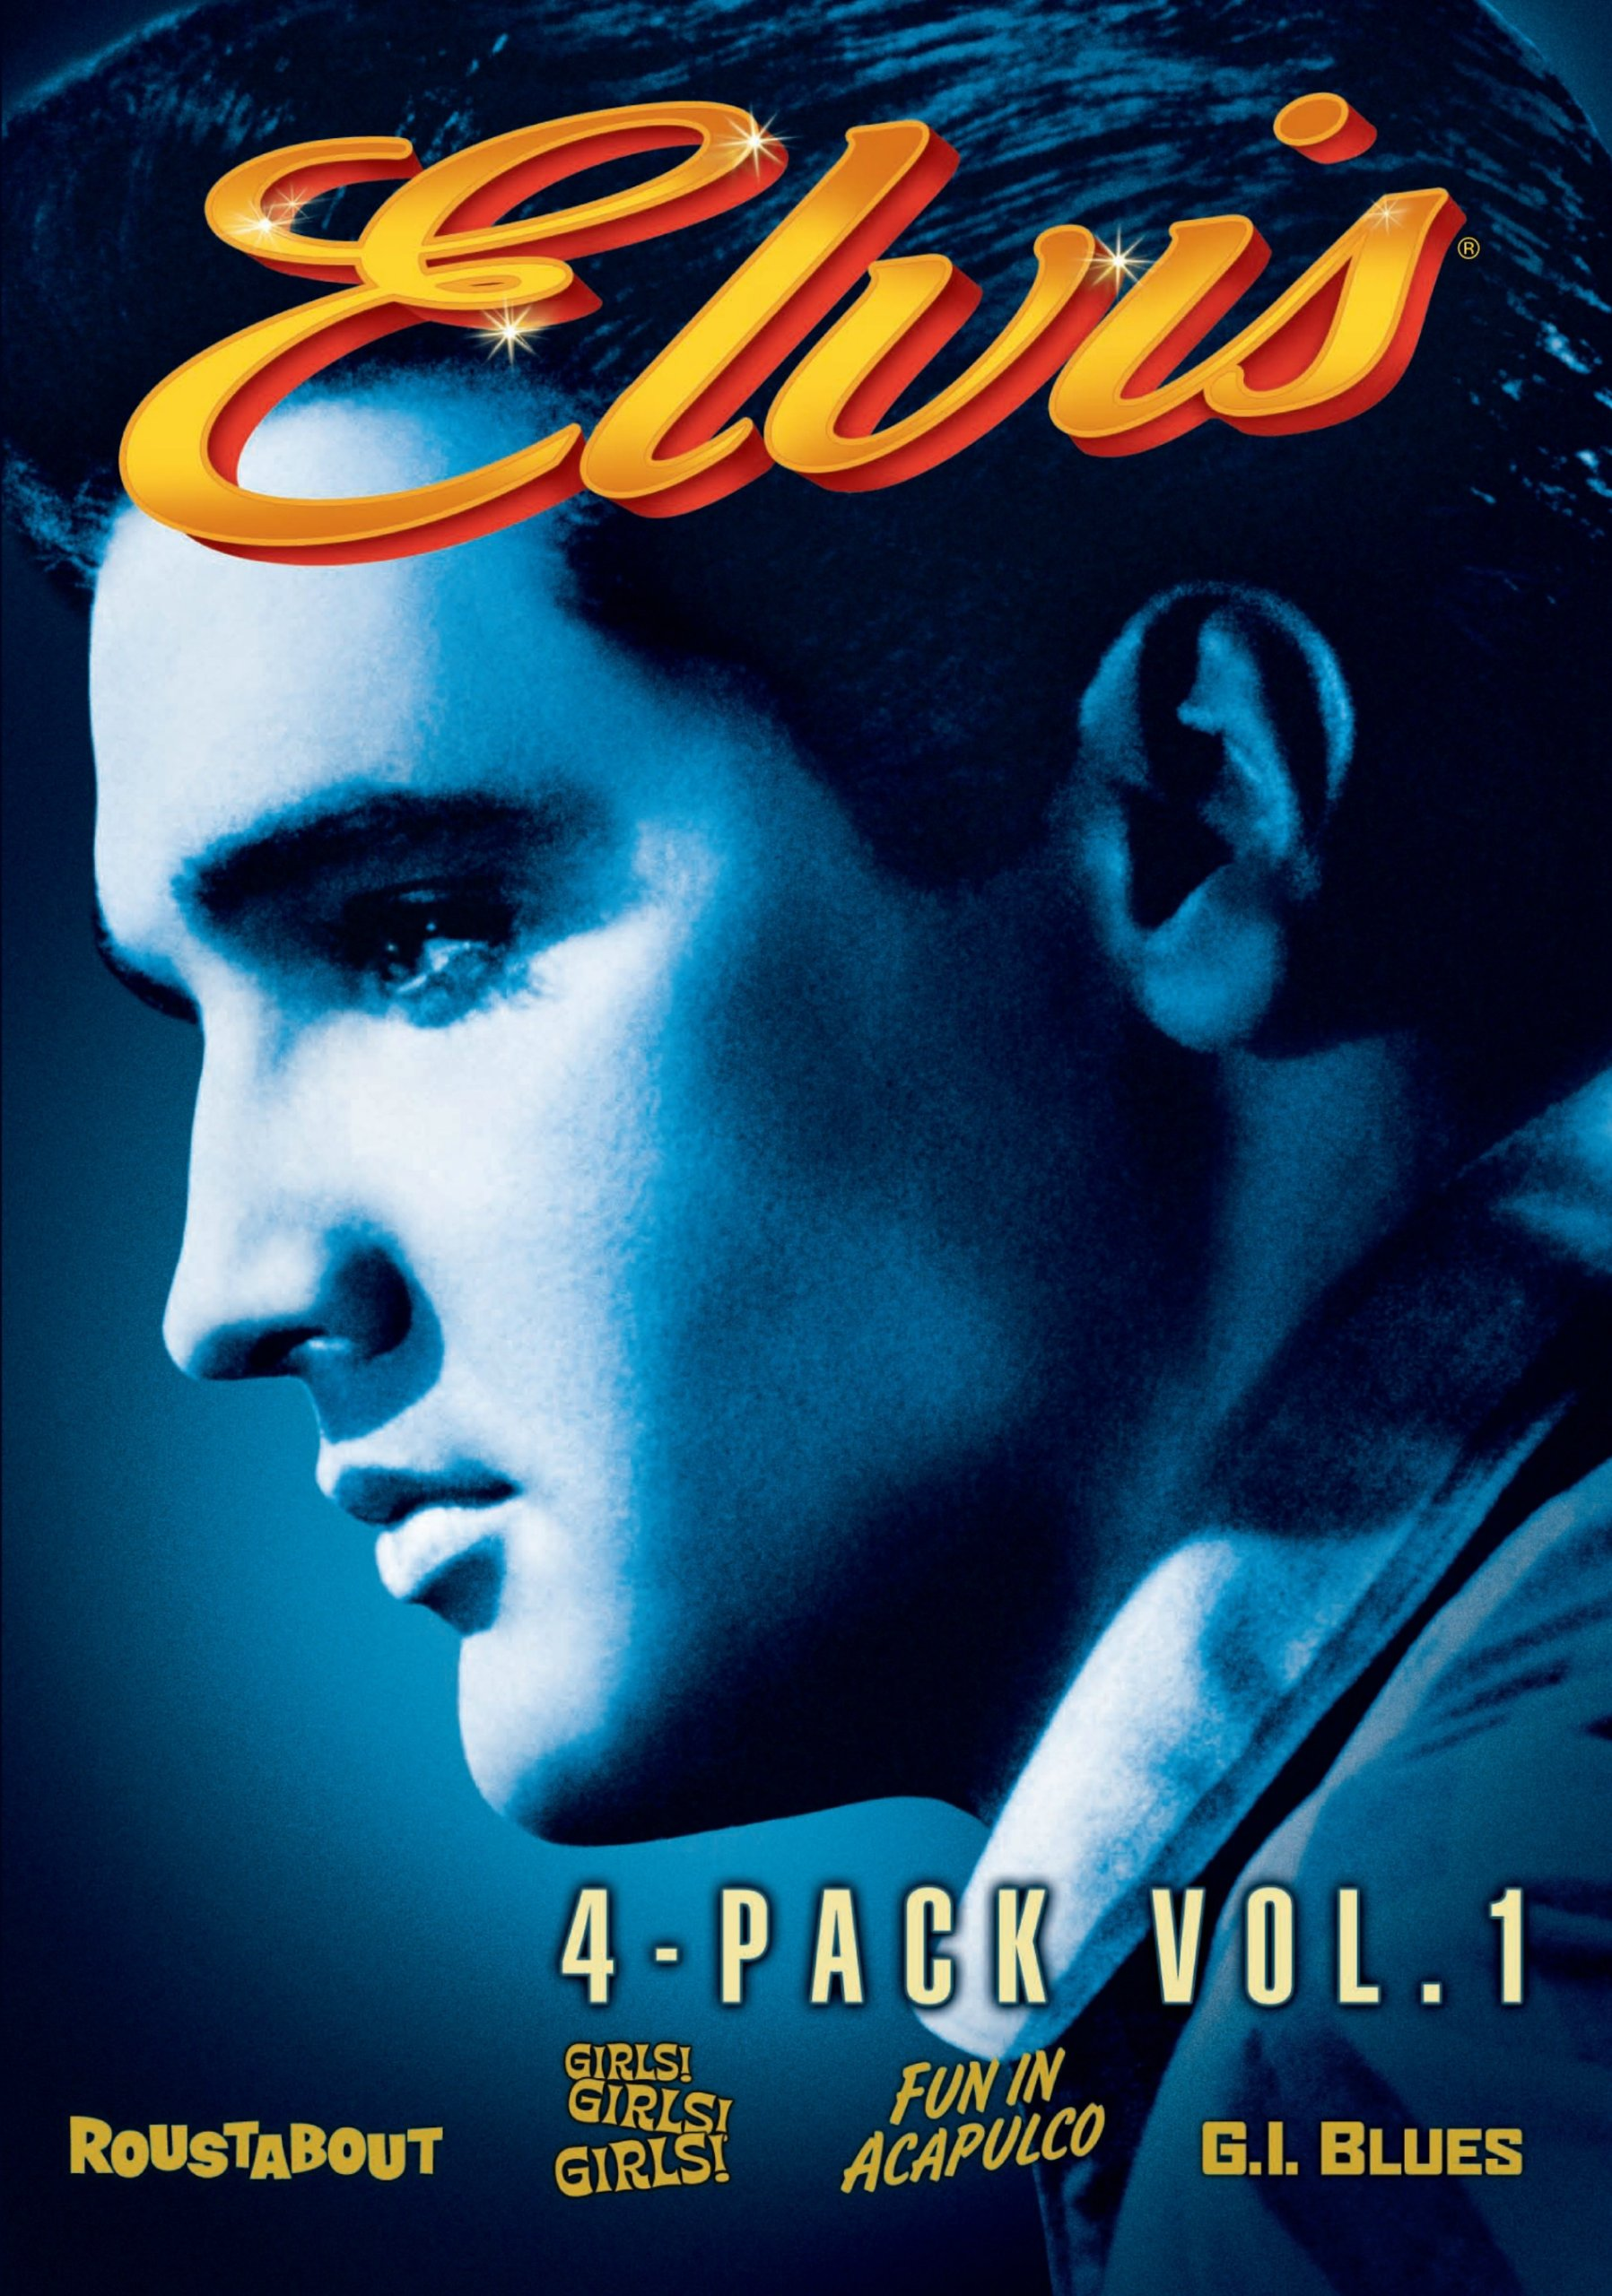 Elvis Collection: Volume One (Roustabout / Girls Girls Girls / Fun In Acapulco / G.I. Blues)